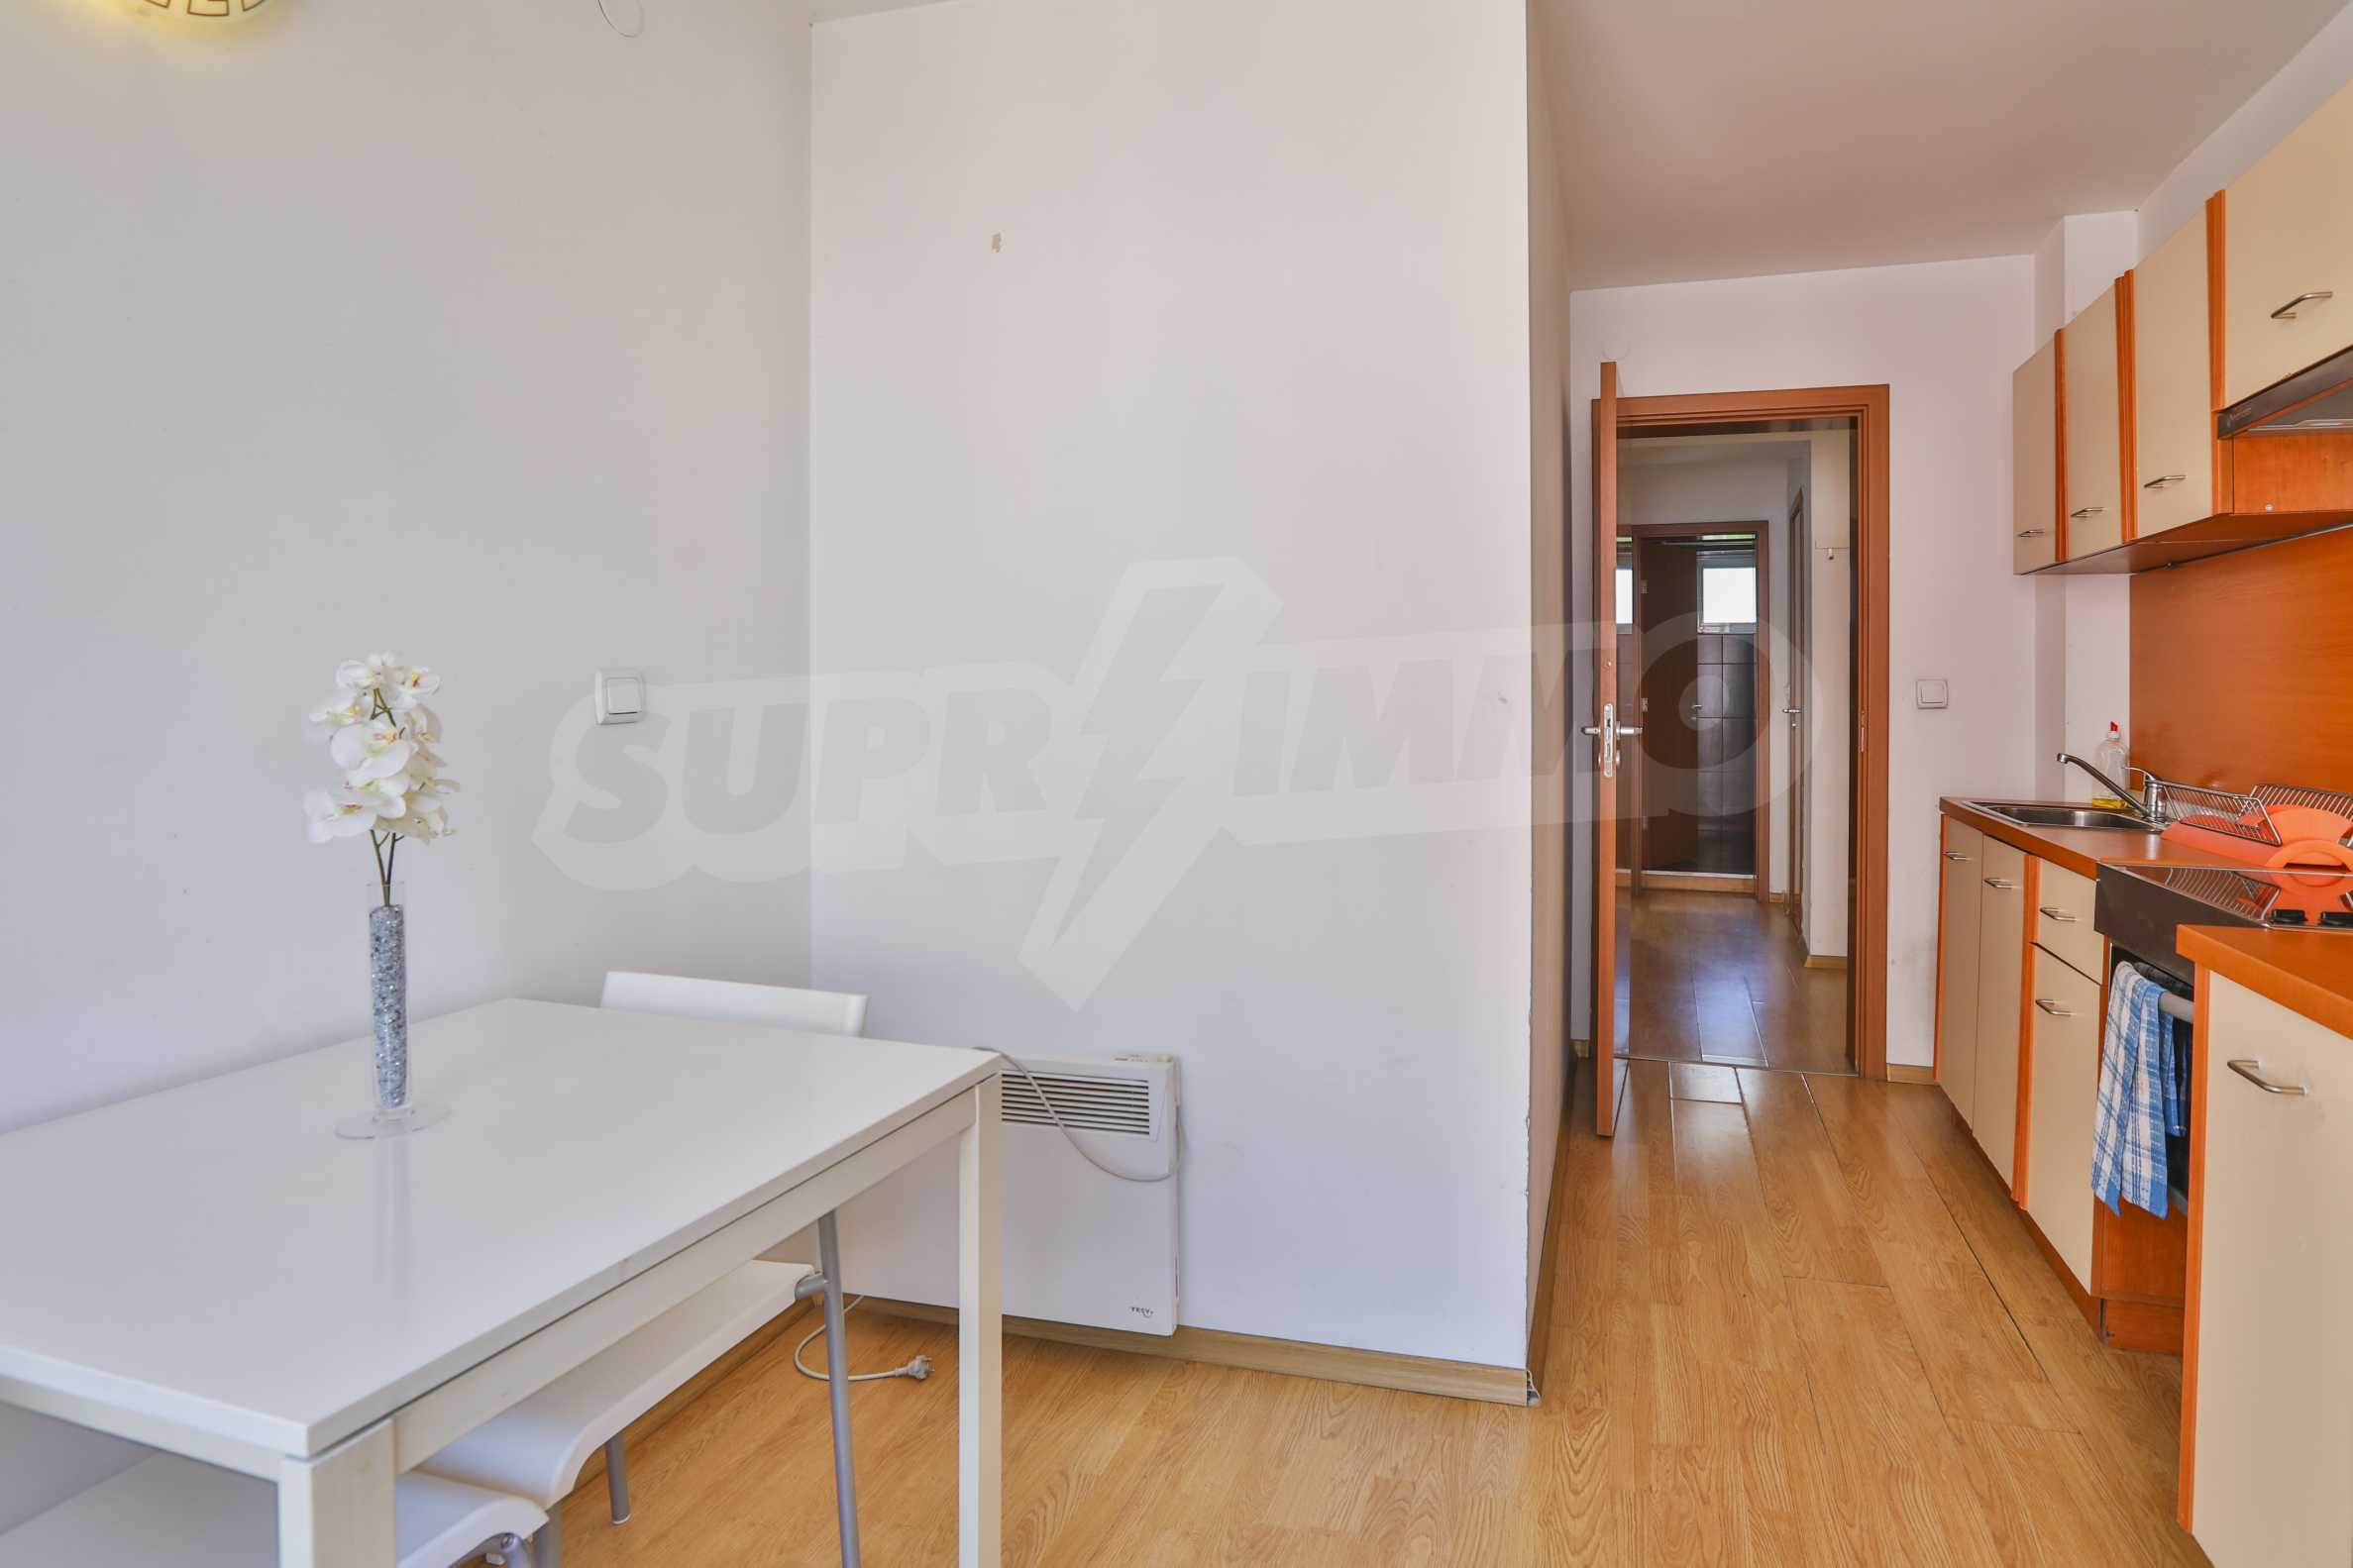 Two-bedroom apartment in the center with high rating on Airbnb 4